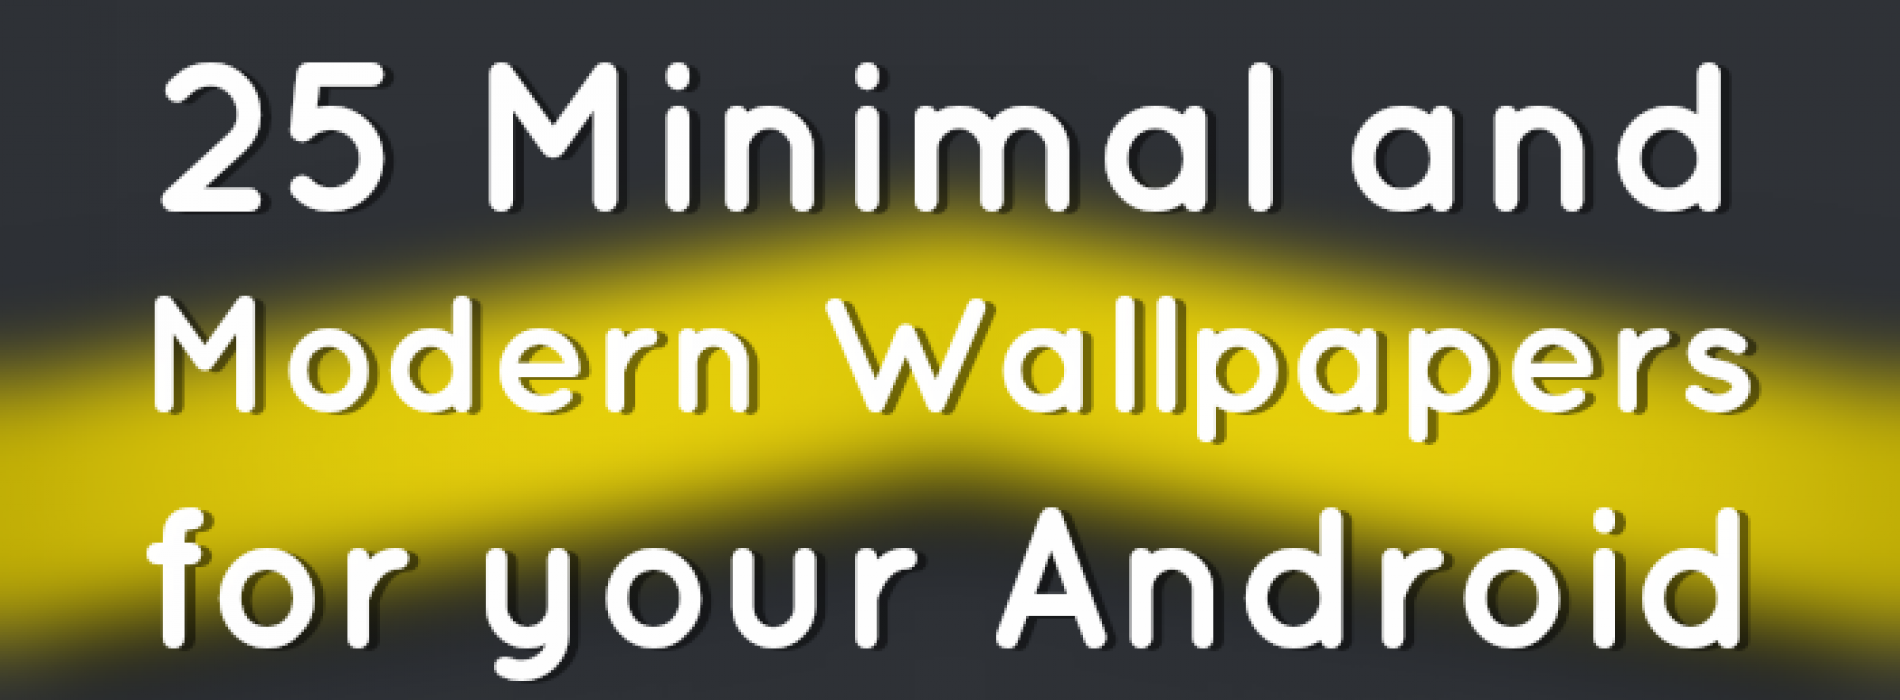 25 minimal and modern wallpapers for your Android